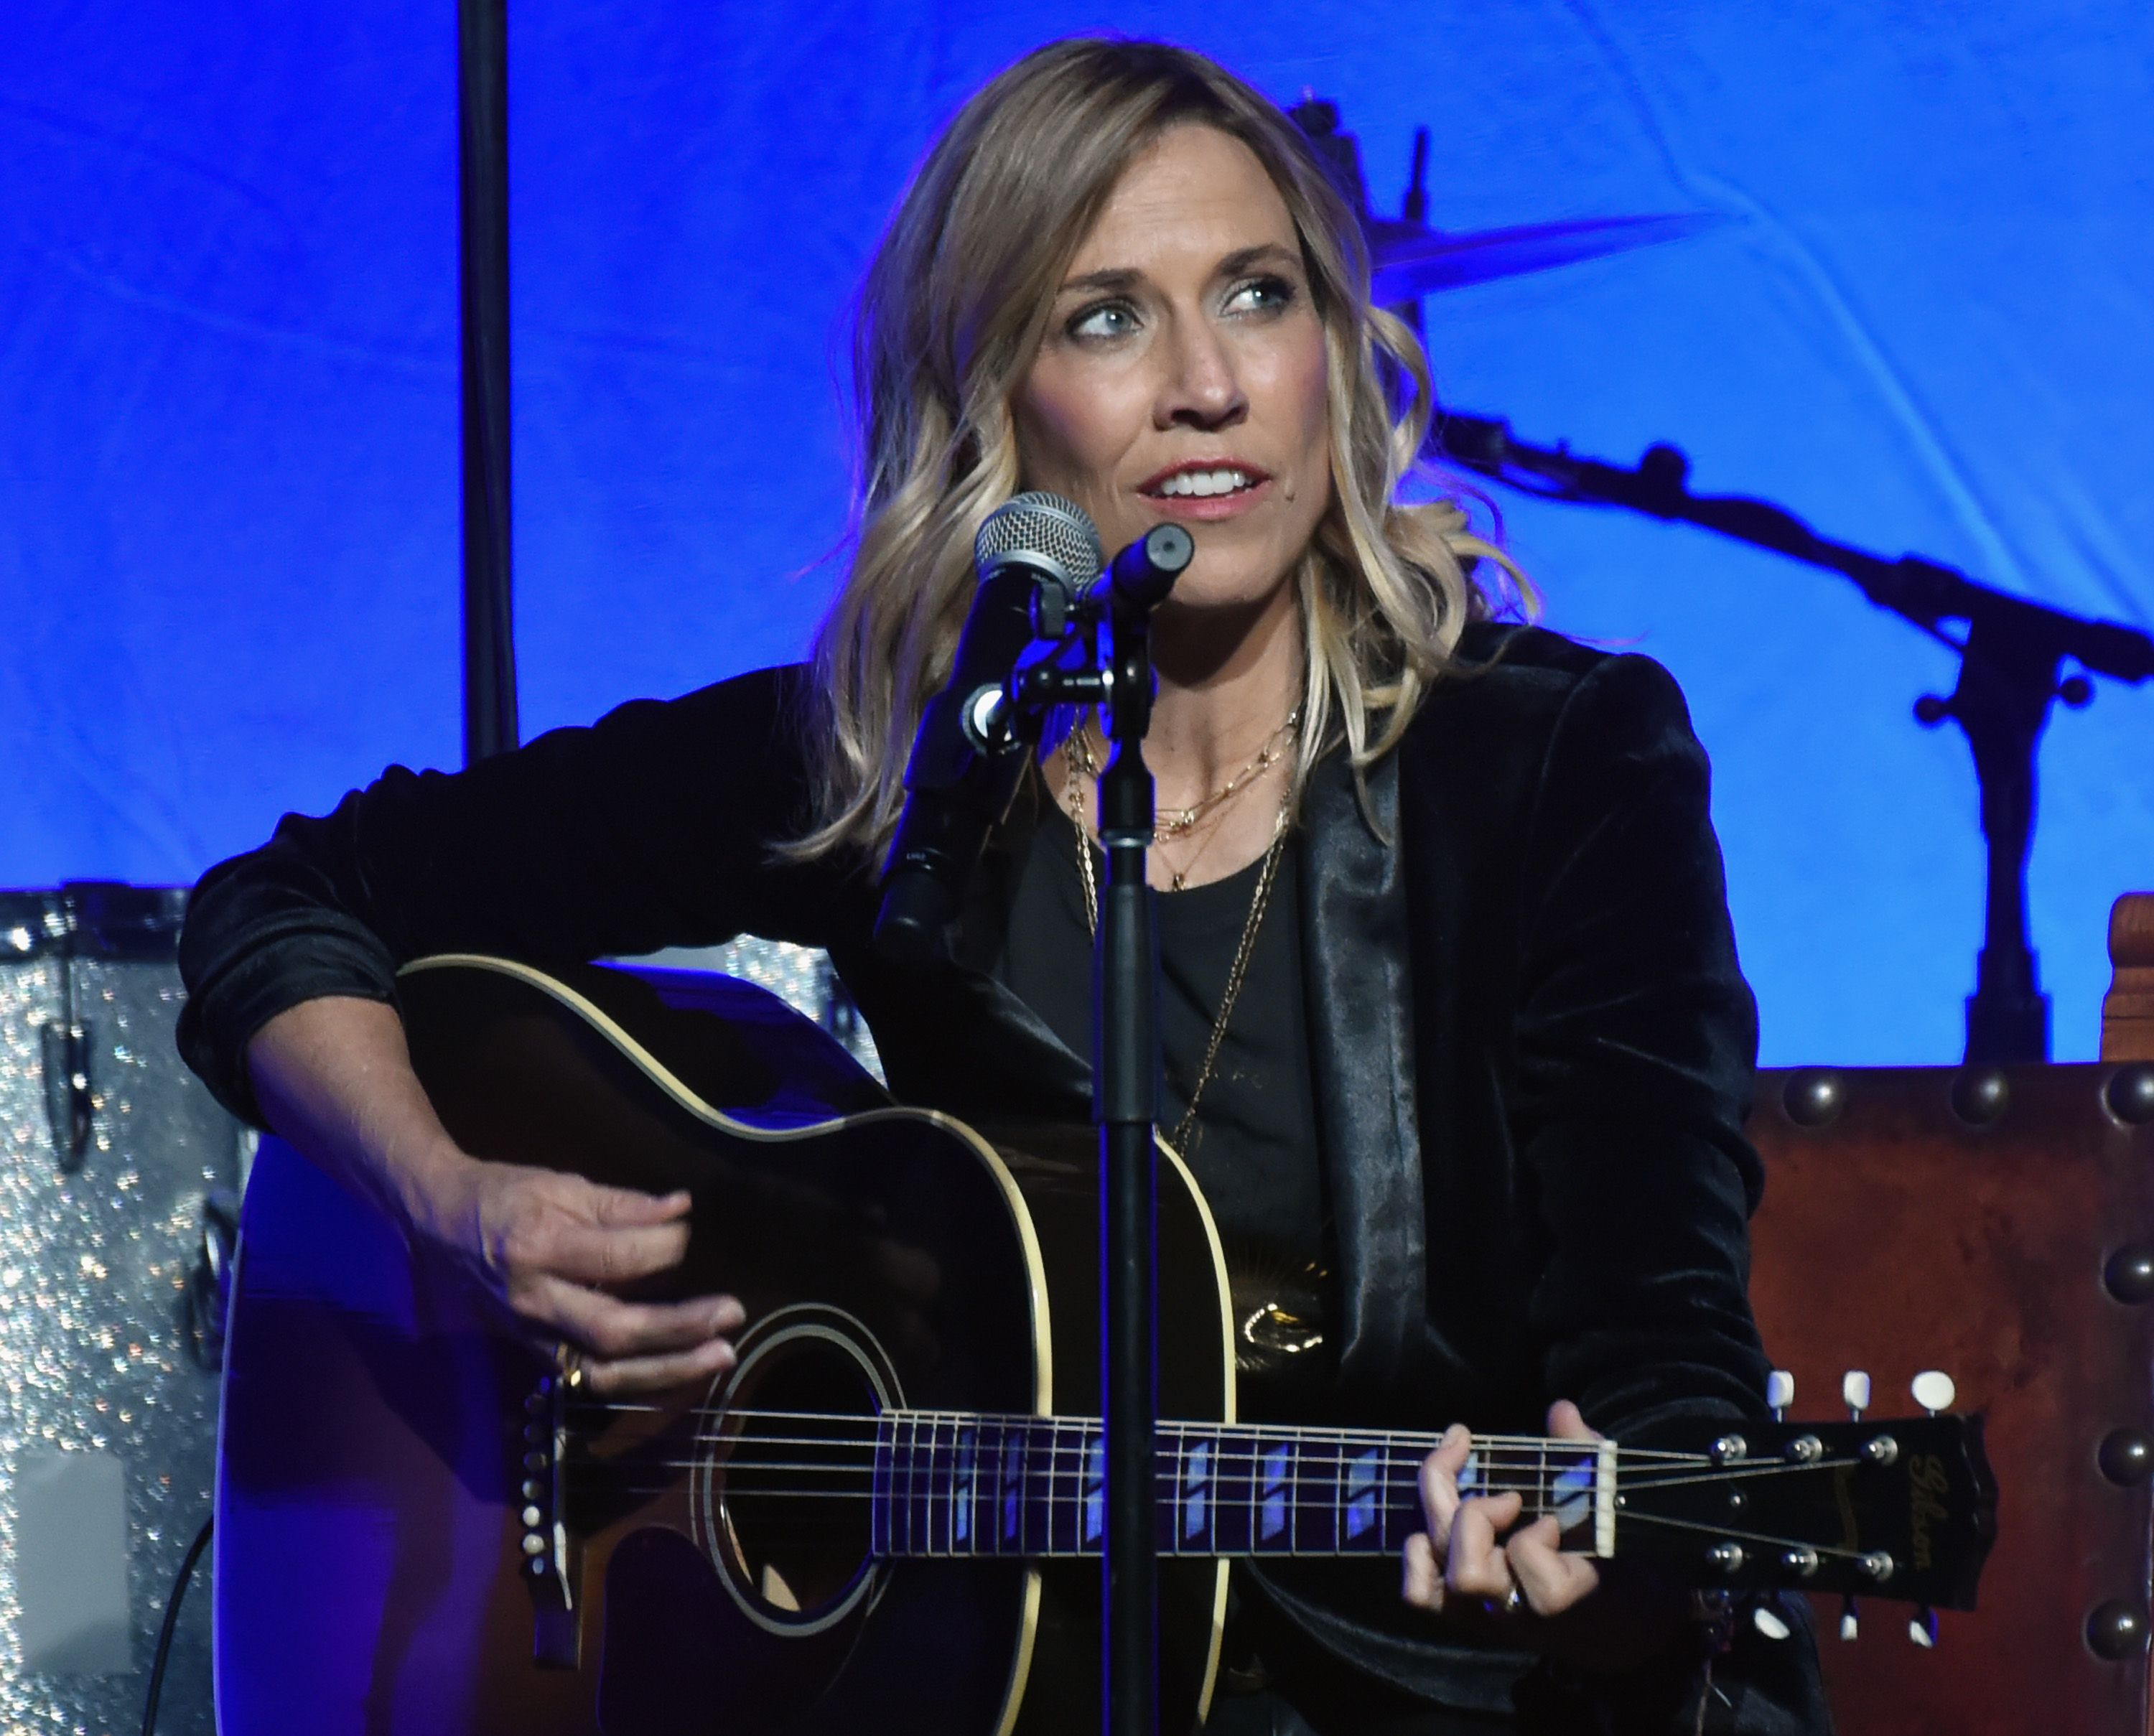 heryl Crow performs during An Intimate Evening Celebrating The Songs of Sheryl Crow & Jeff Trott on November 2, 2017. | Getty Images